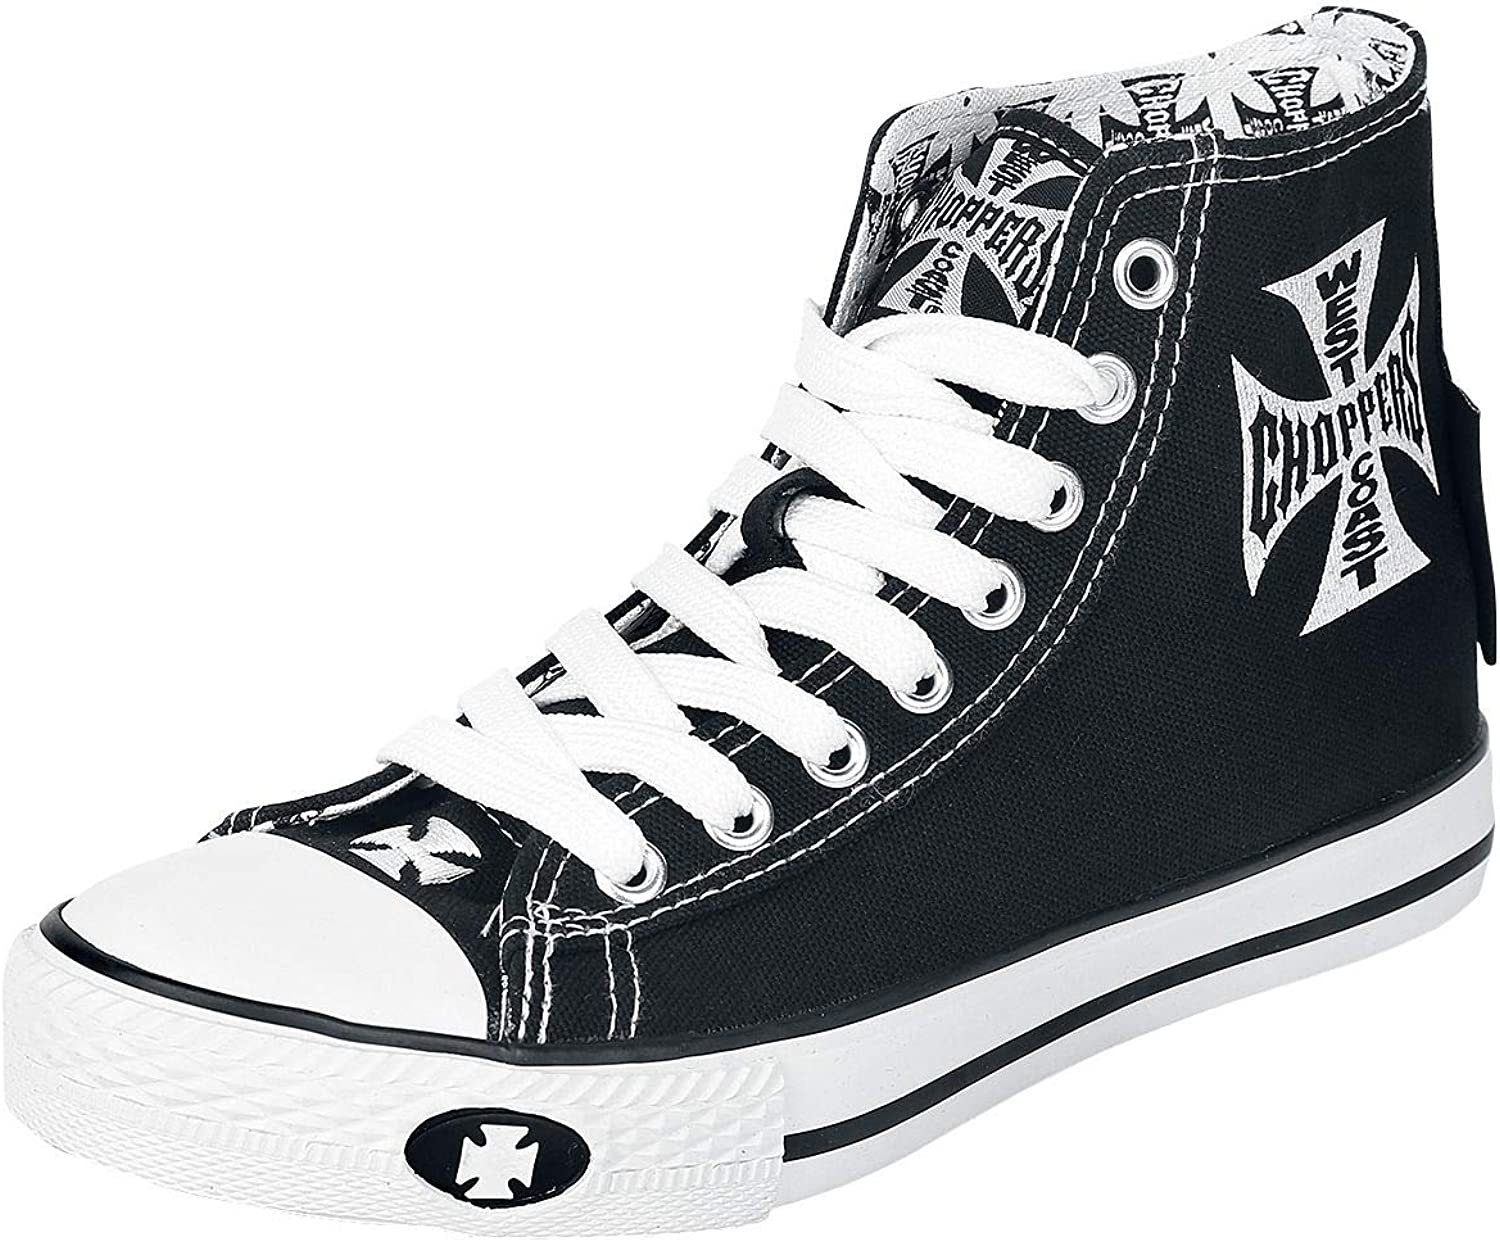 West Coast Choppers Iron Cross Sneakers High Black-White